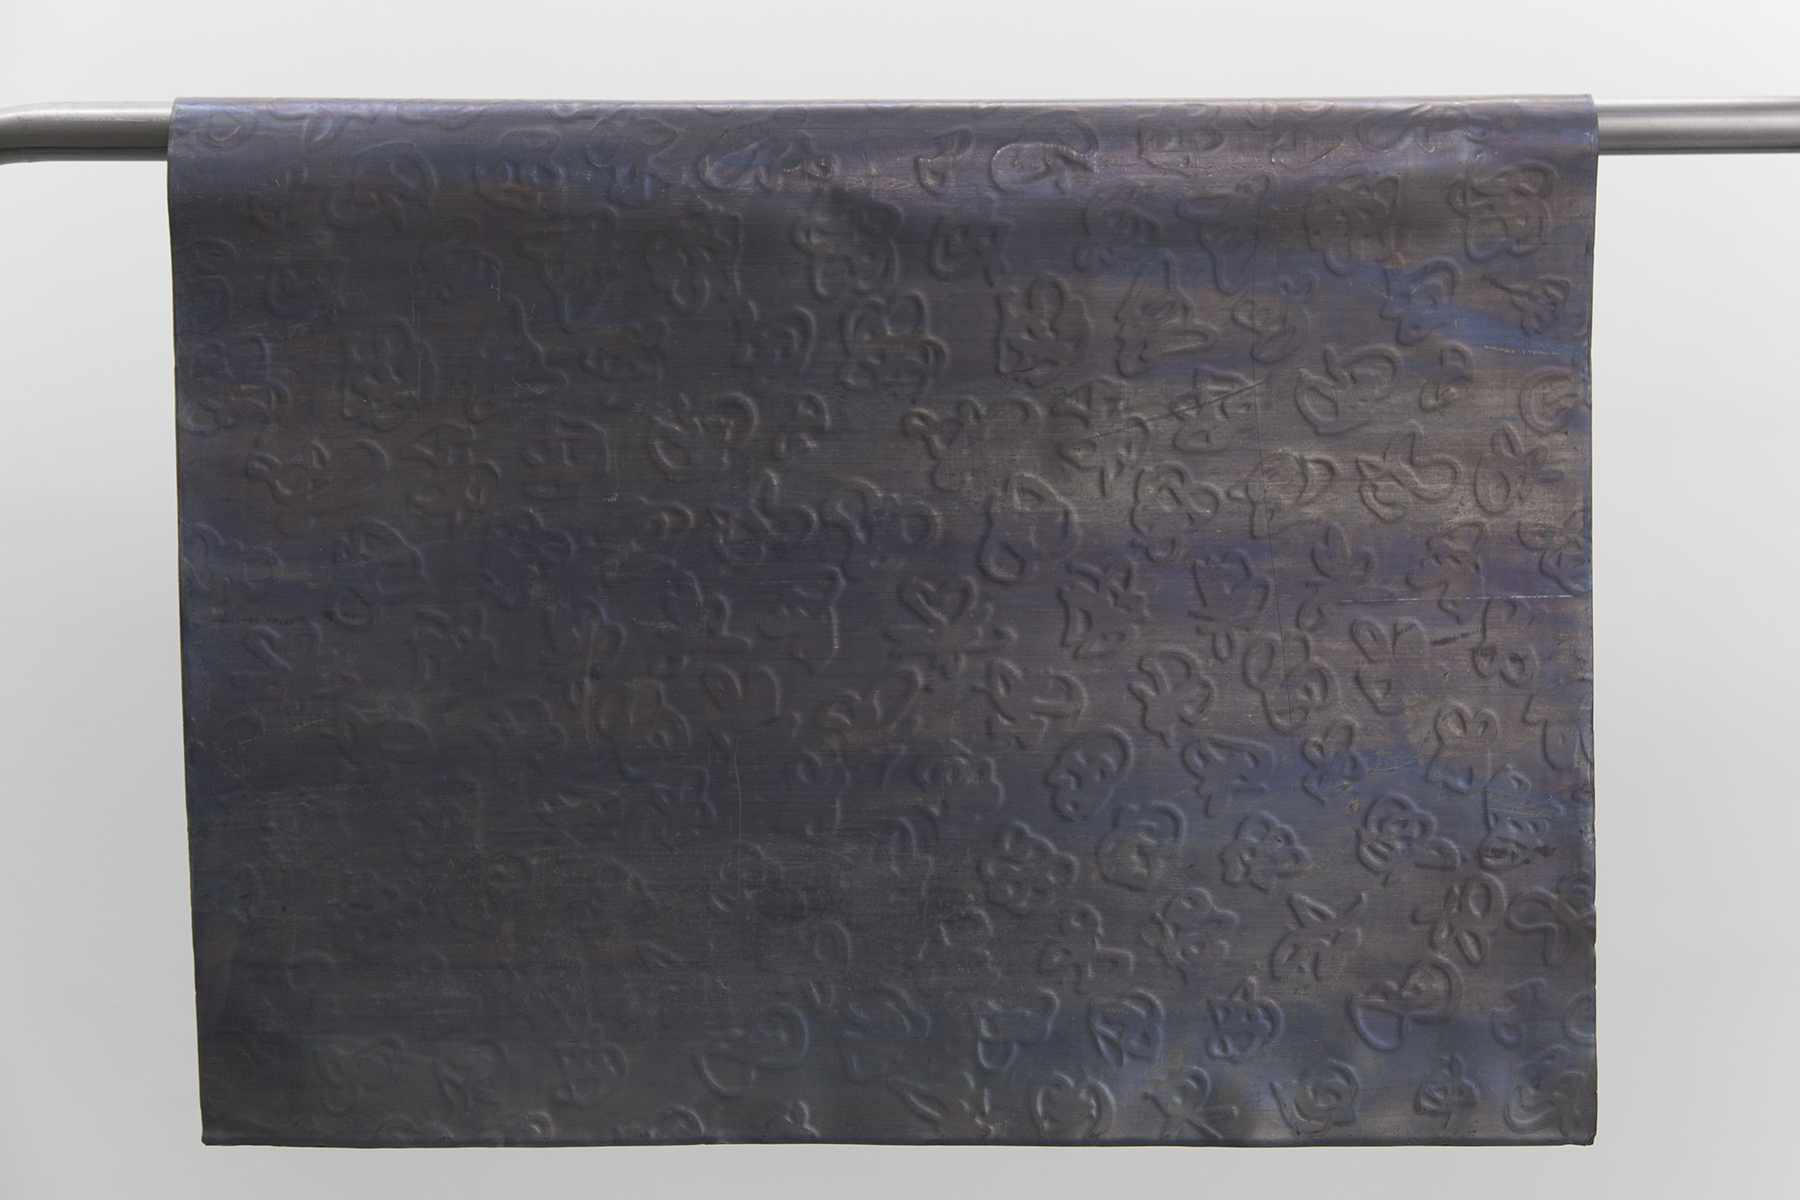 intimacy as a rule of thumb is registered, 2016, embossed lead sheets, steel.